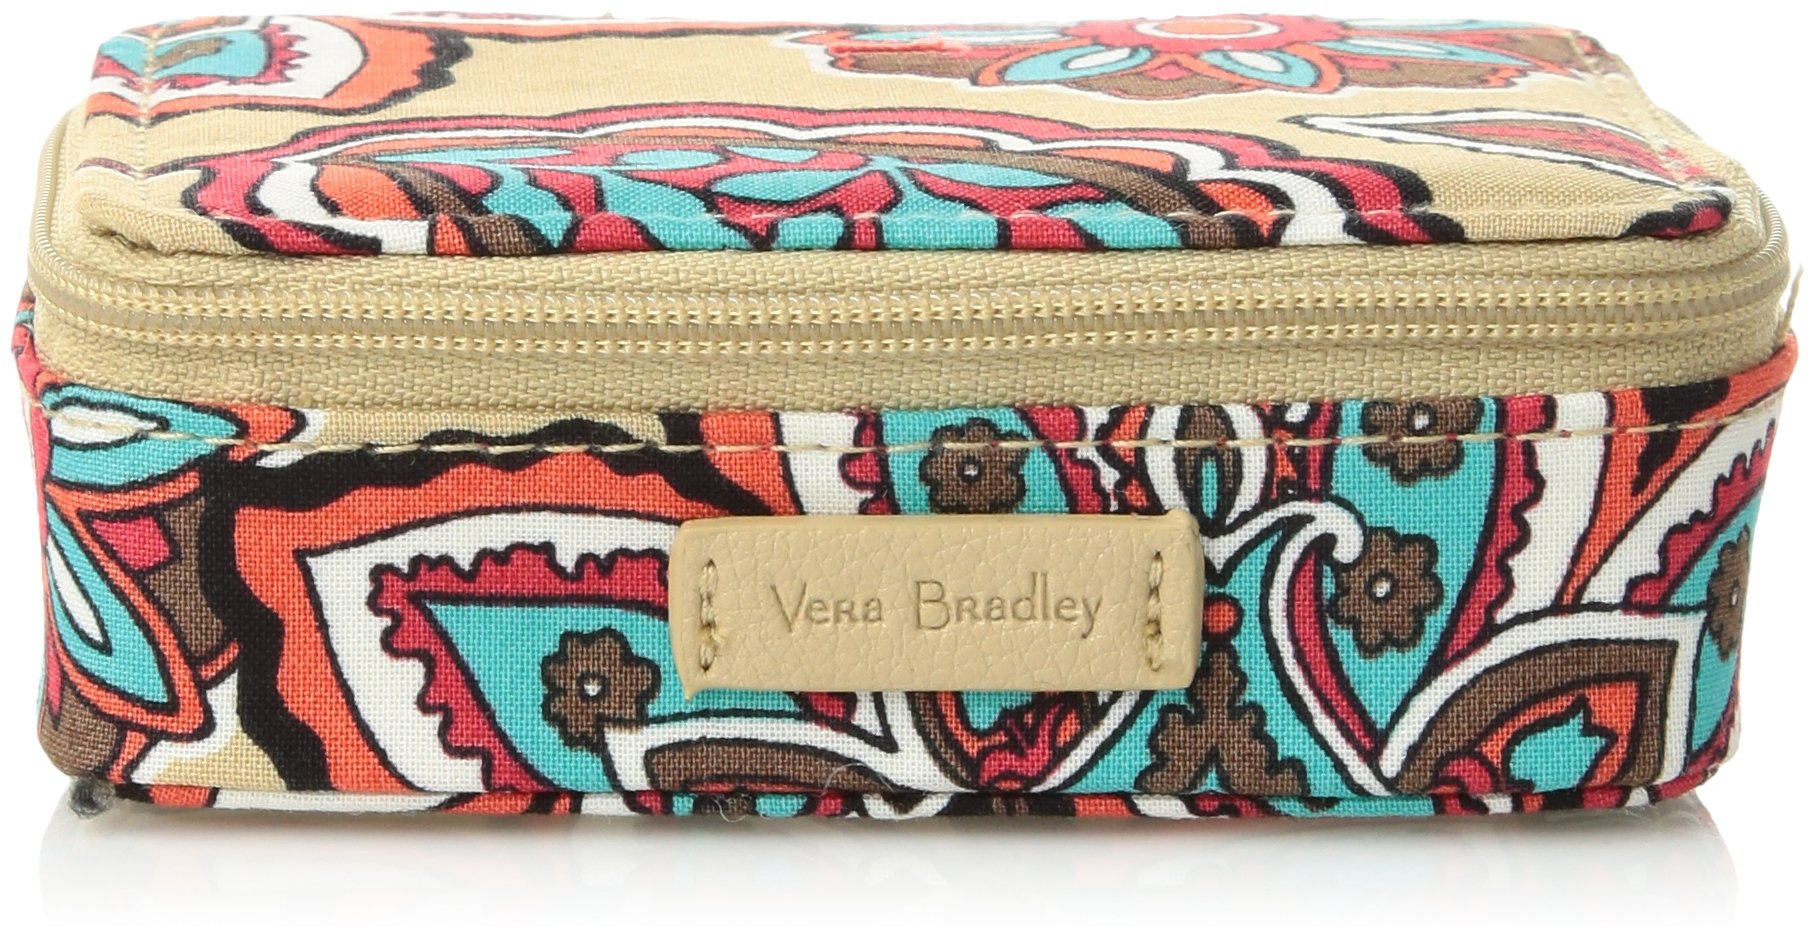 Vera Bradley Iconic Travel Pill Case, Signature Cotton, Desert Floral by Vera Bradley (Image #1)